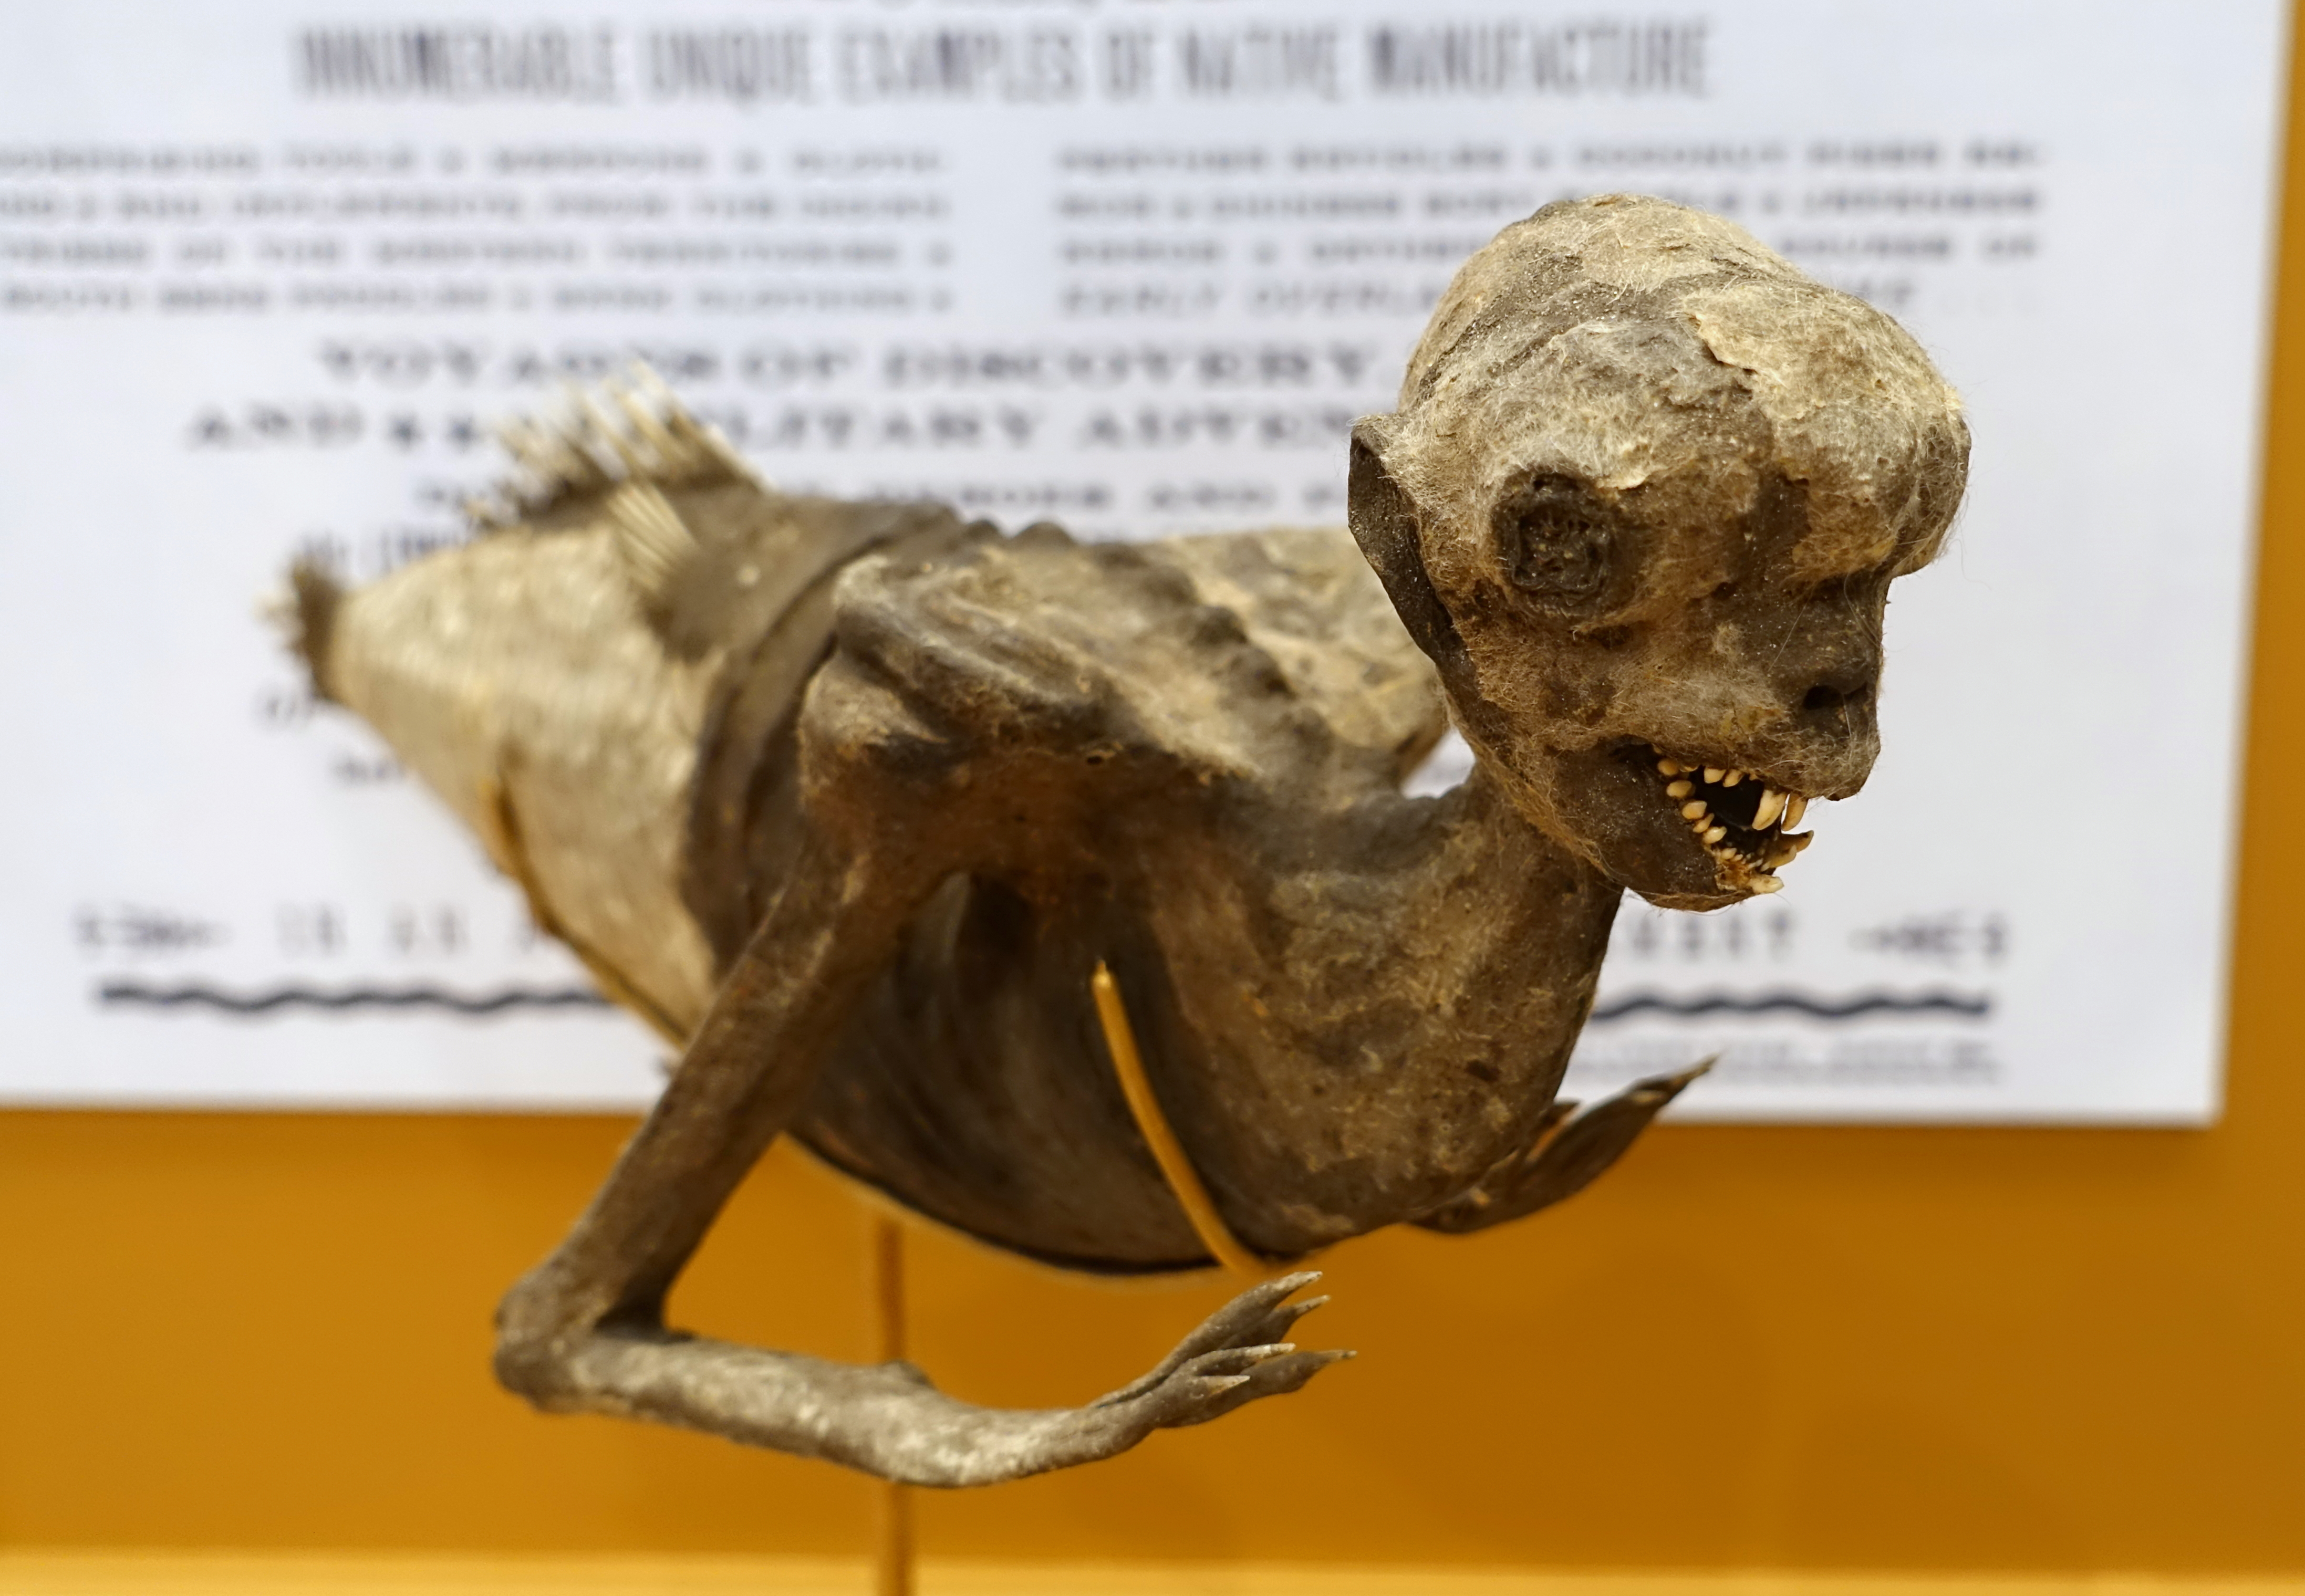 An image of the famous 1840s Feejee mermaid.